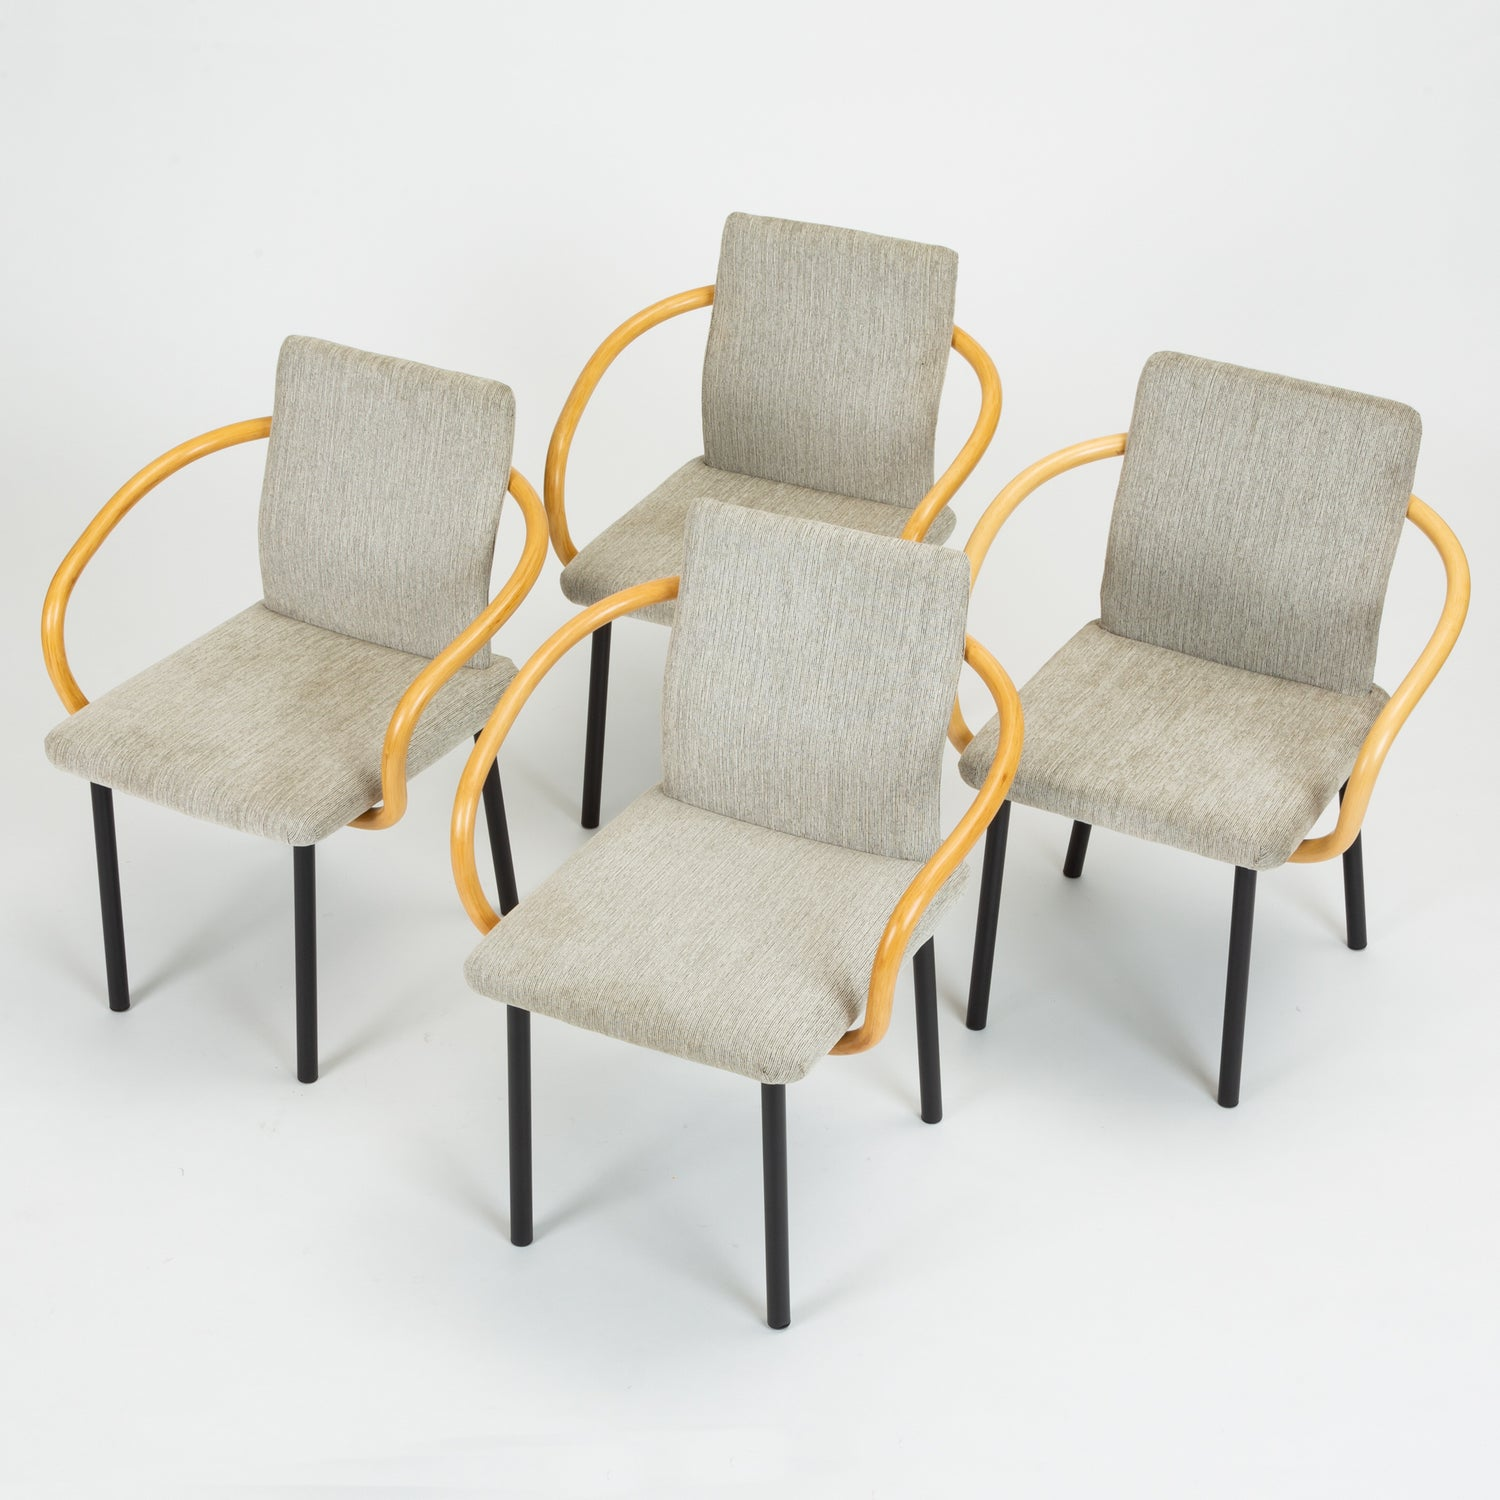 Set of Four Bamboo Mandarin Chairs by Ettore Sottsass for Knoll